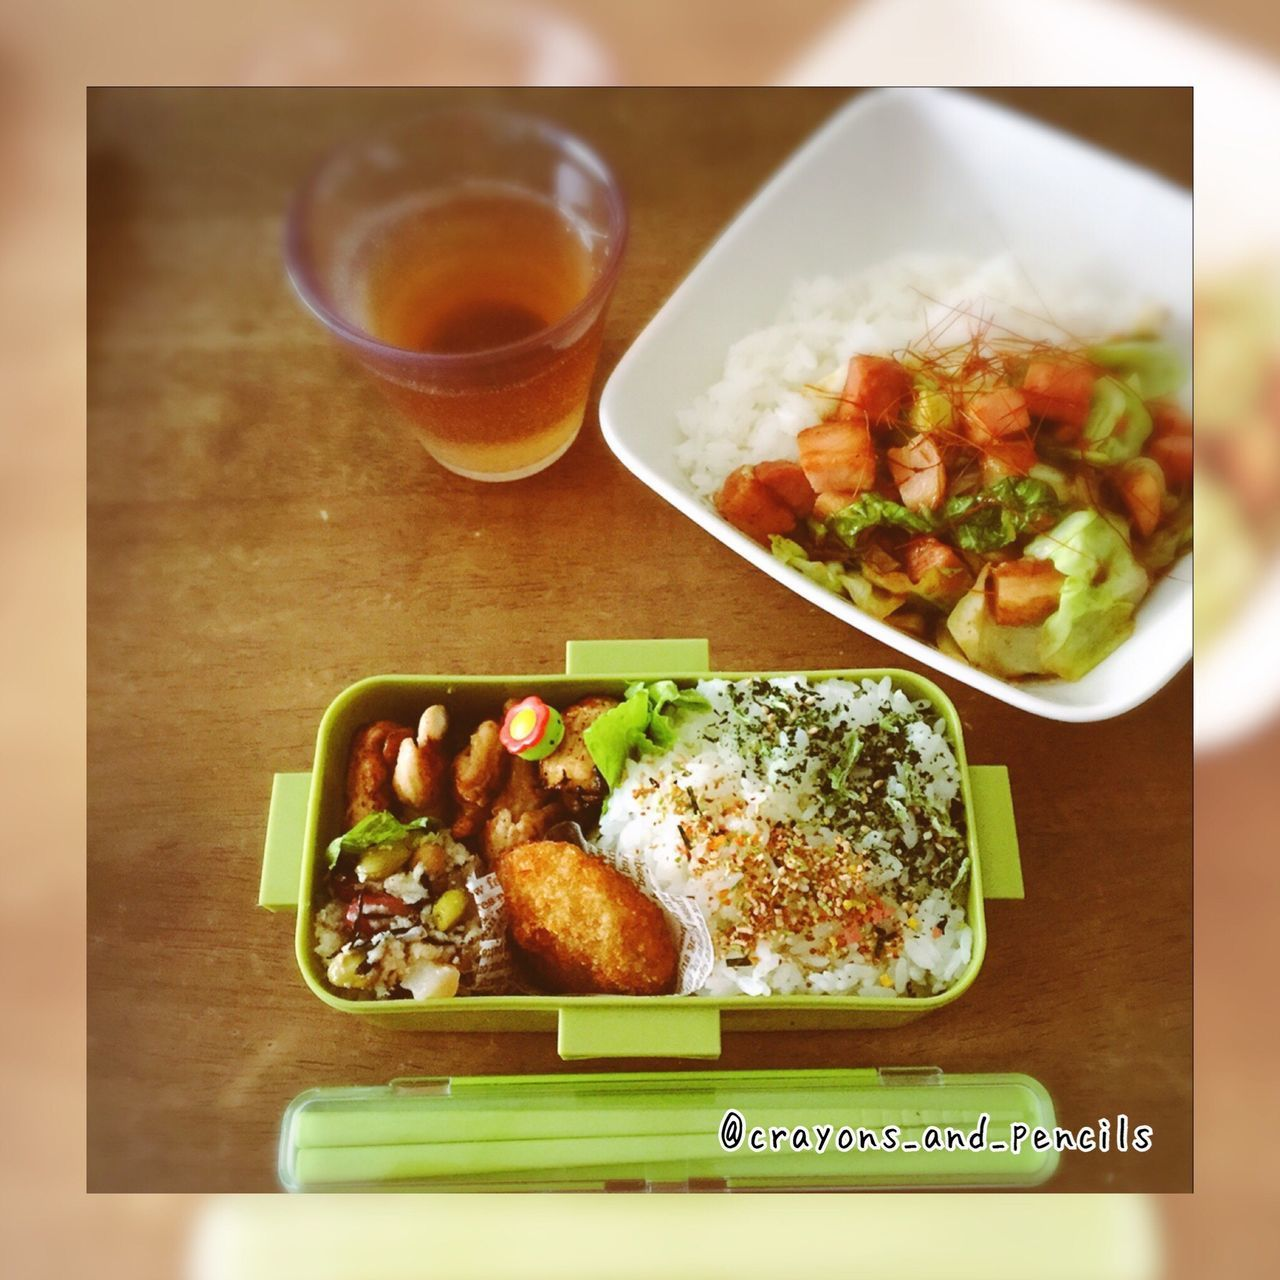 Food Healthy Eating Lunch Lunch Box